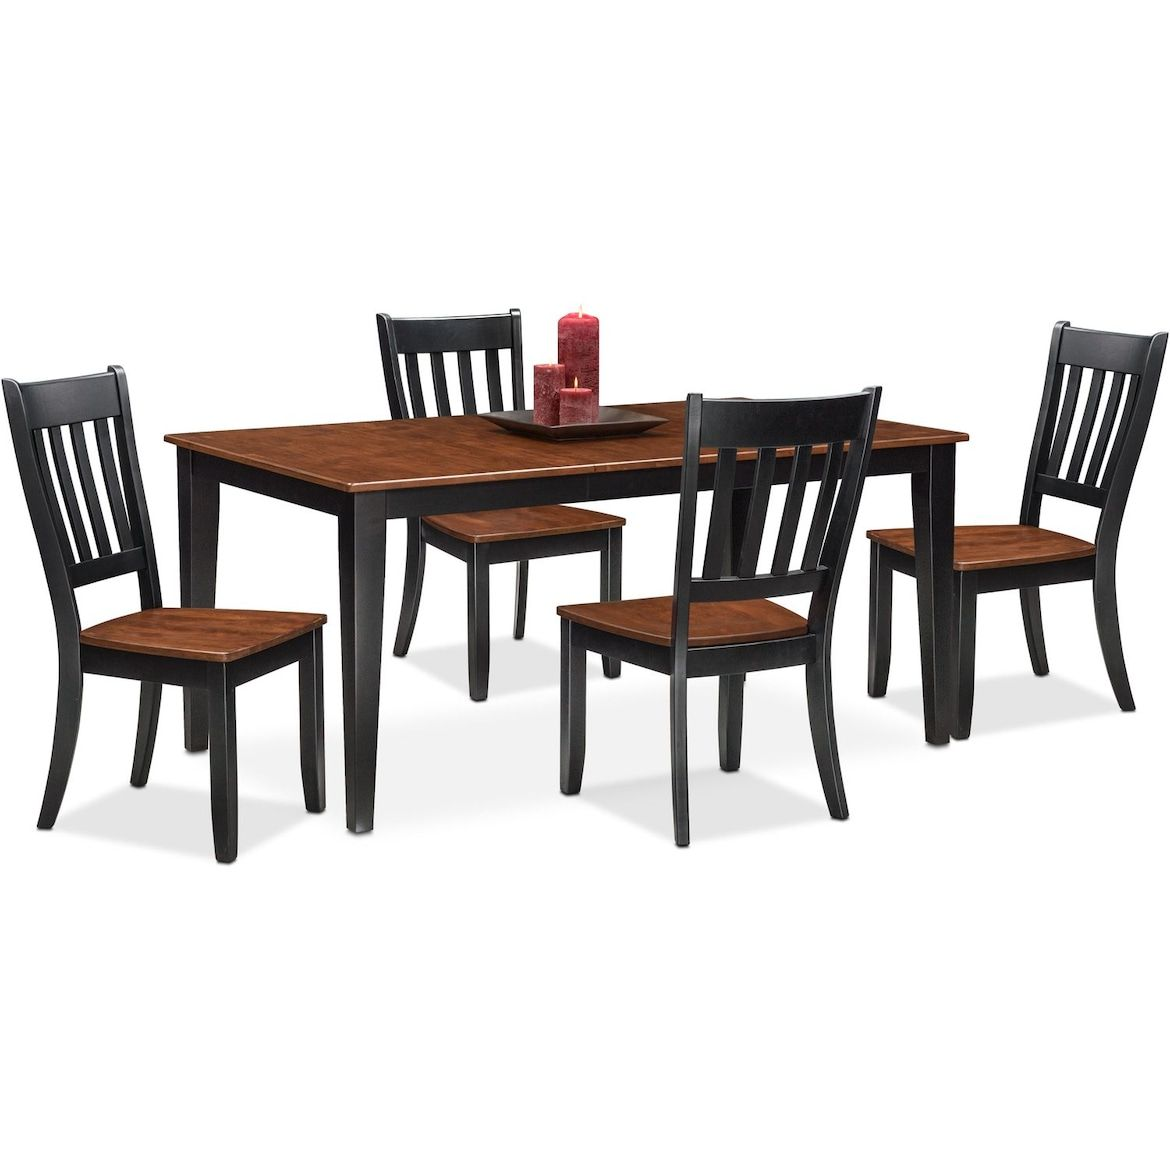 Nantucket Dining Table And 4 Slat Back Dining Chairs Furniture